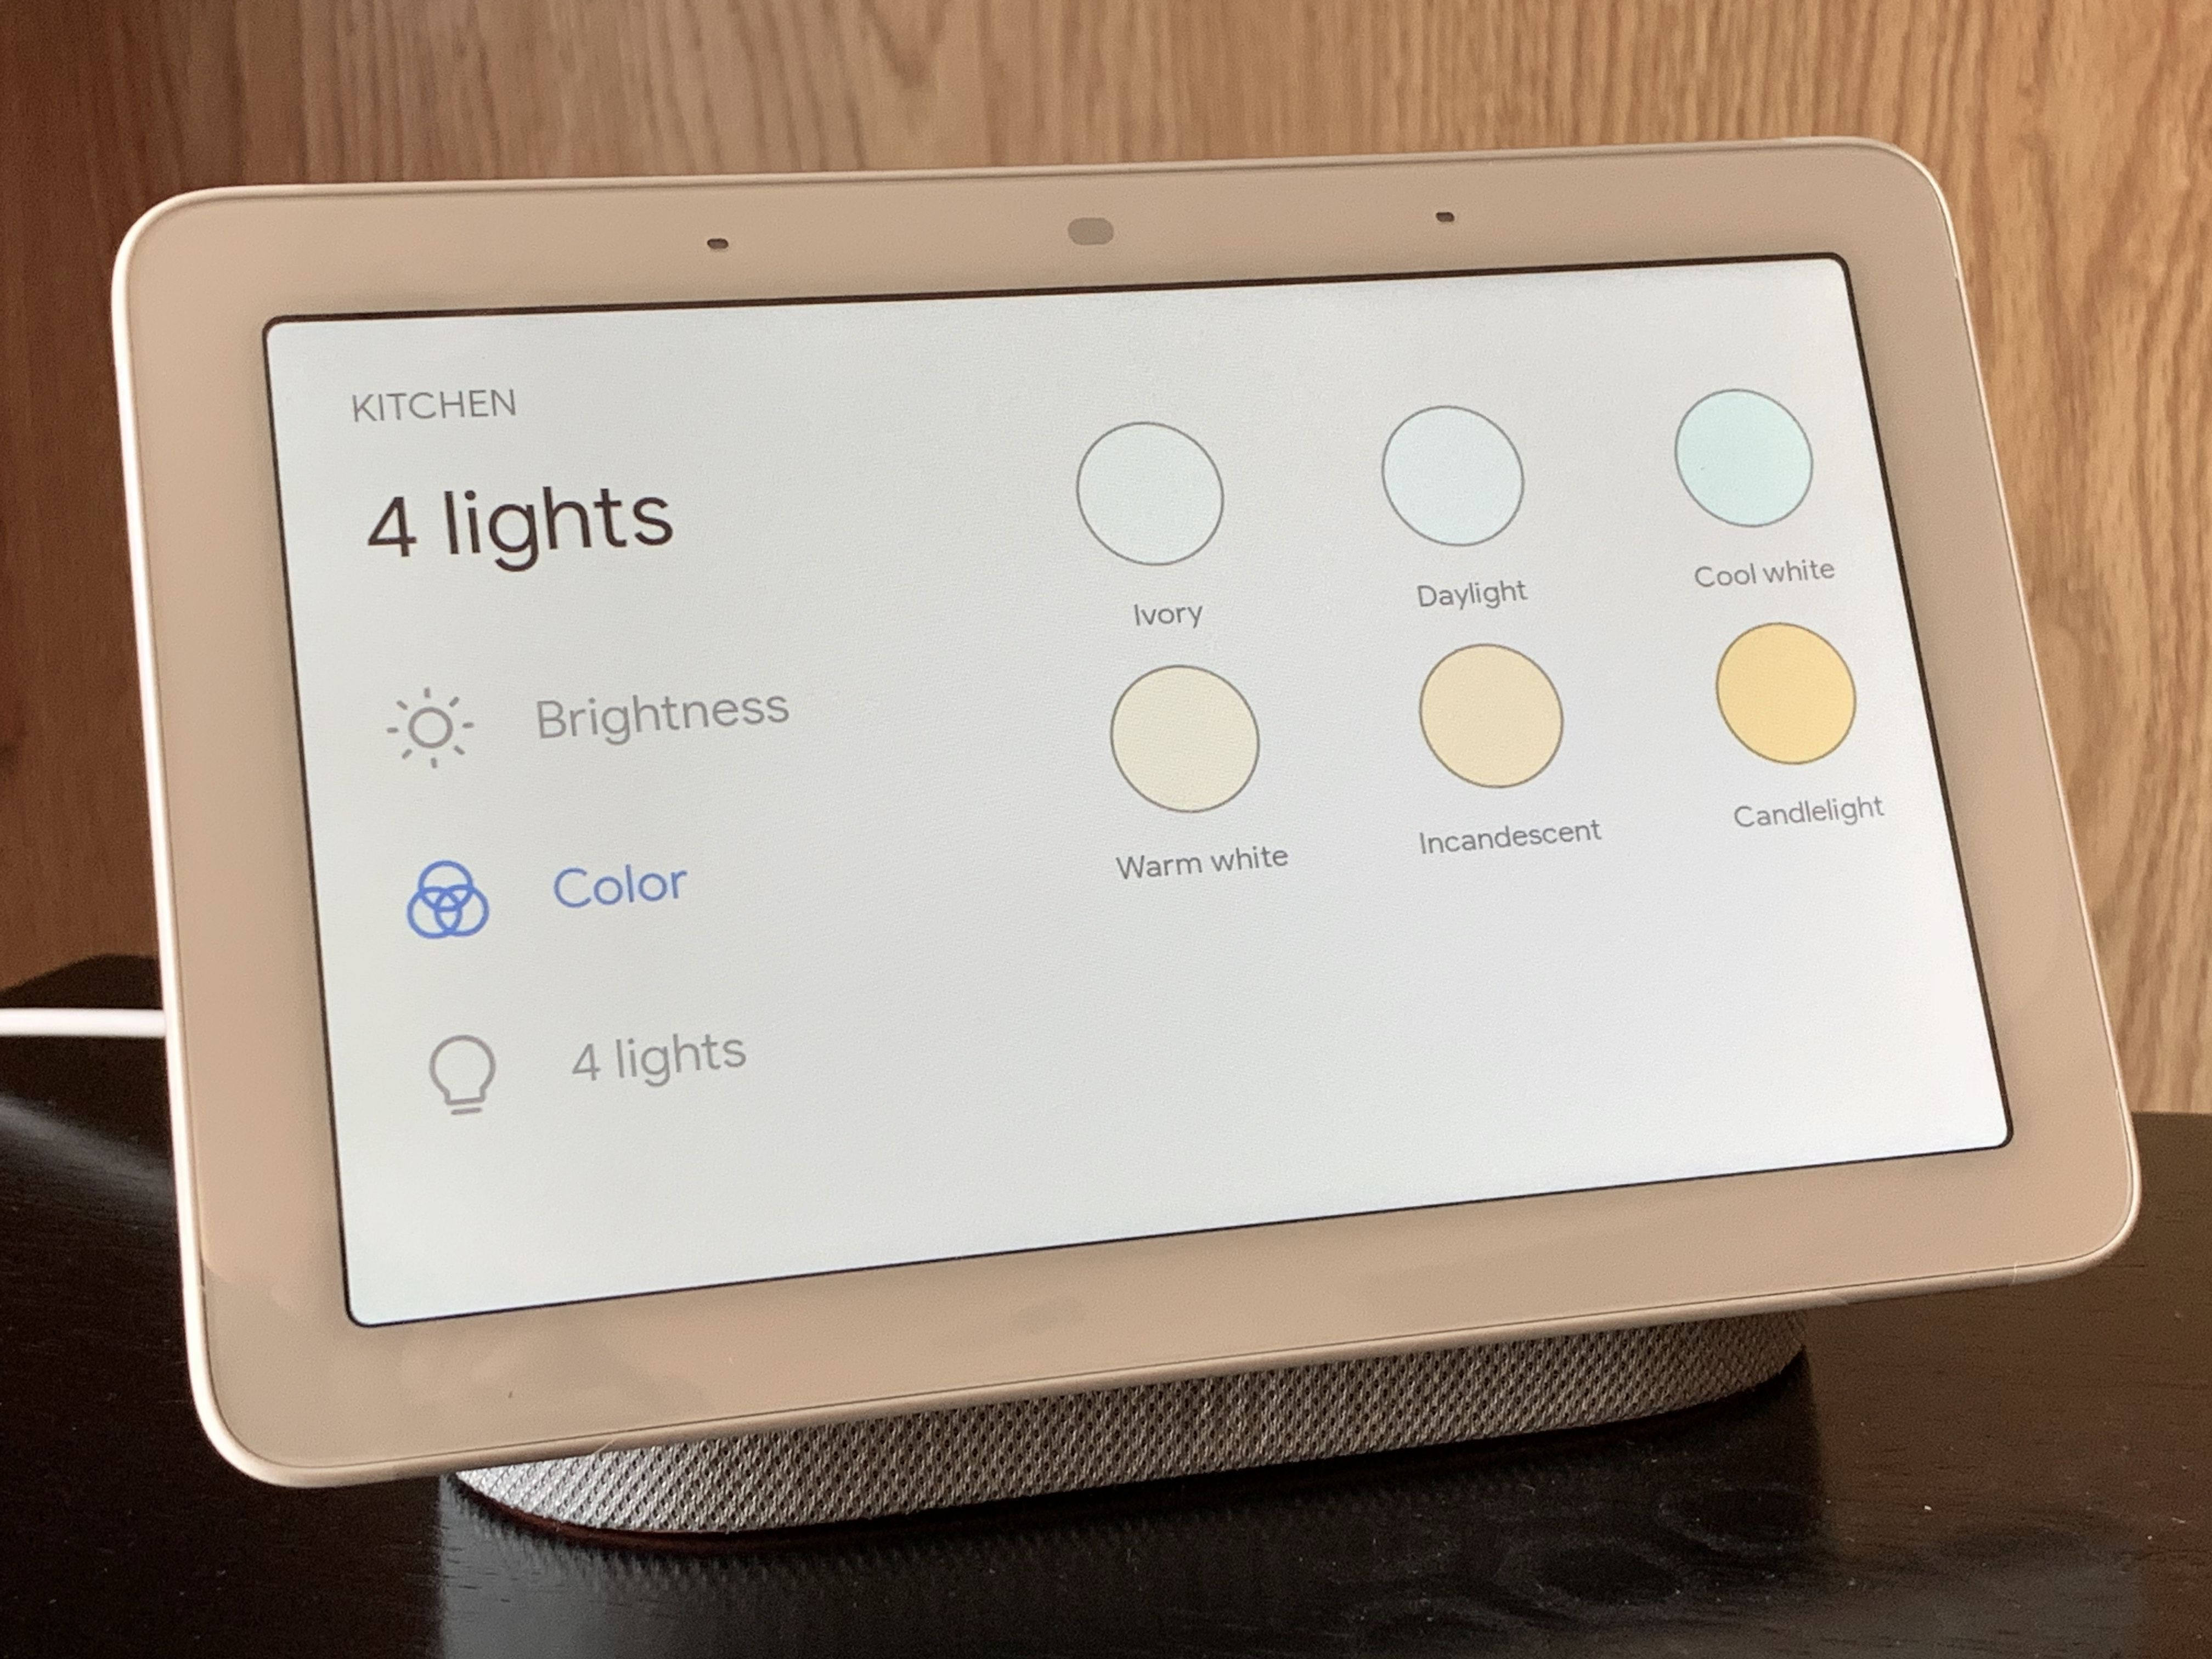 b4bdf3442356 Once you tap a device like a Nest Thermostat, for example, you'll get full  screen controls to control the device. Or, if lights offer color options,  ...